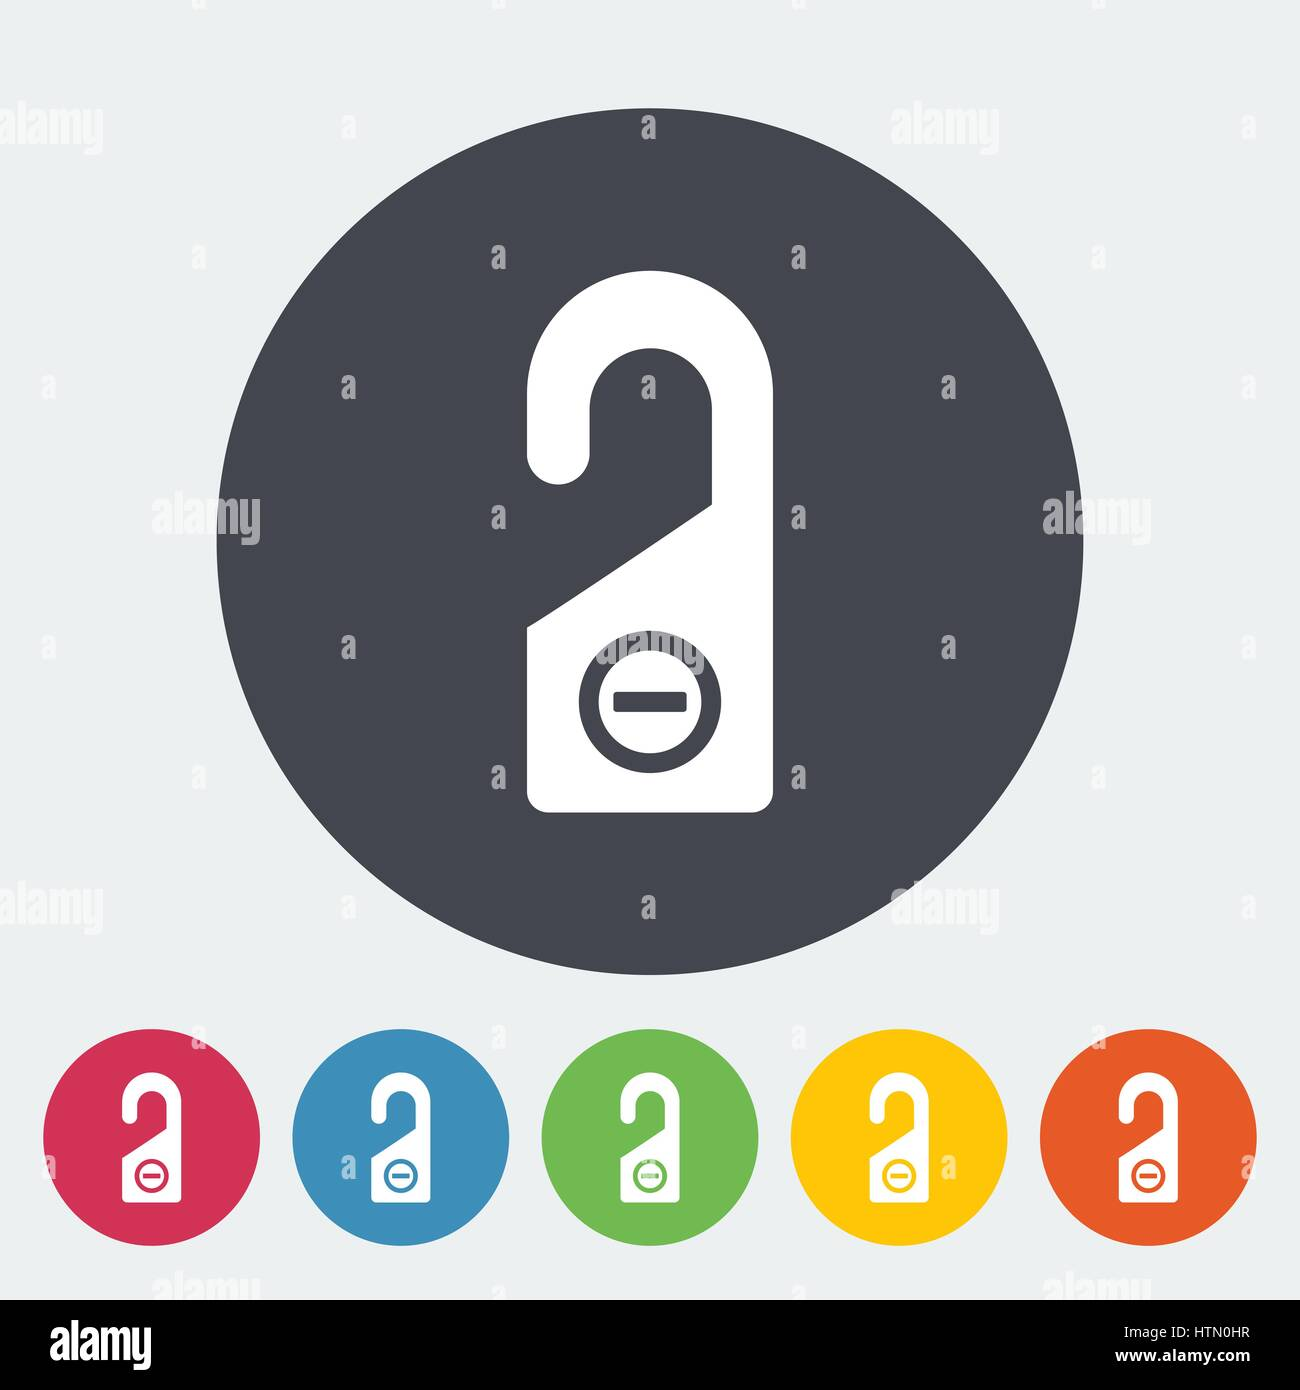 Door tag. Single flat icon on the circle. Vector illustration. Stock Vector